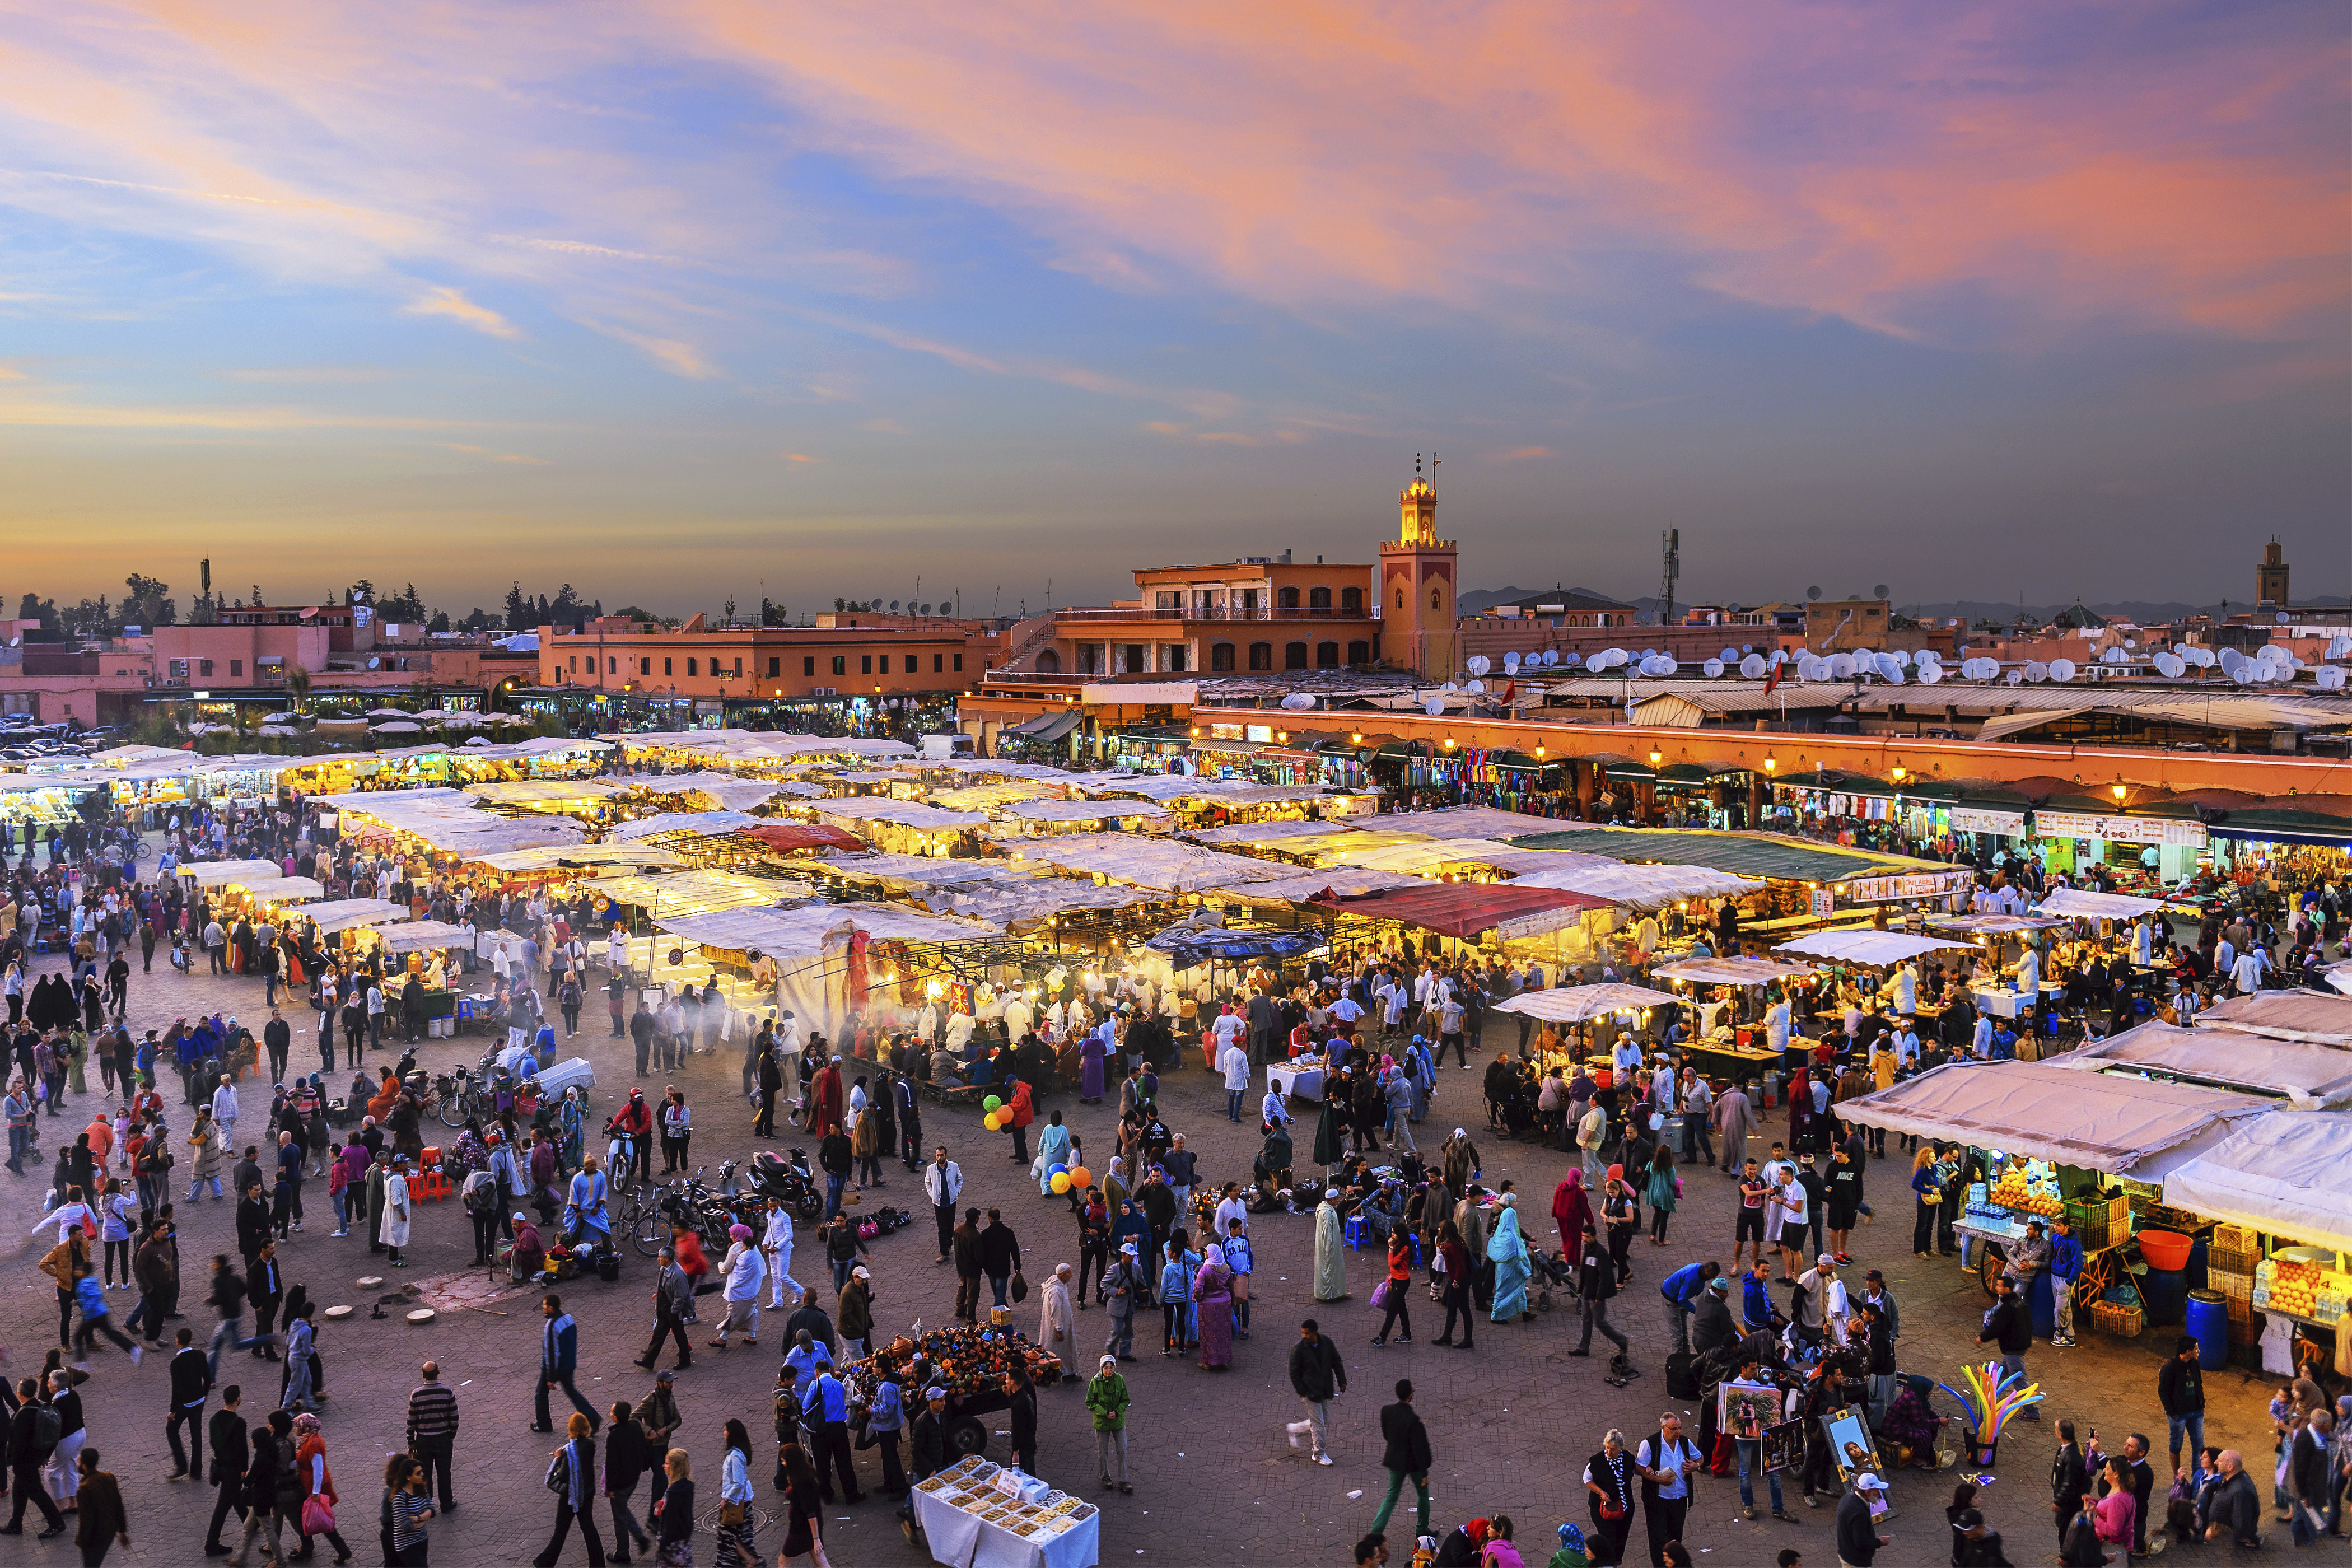 Evening-Djemaa-El-Fna-Square-with-Koutoubia-Mosque,Marrakech